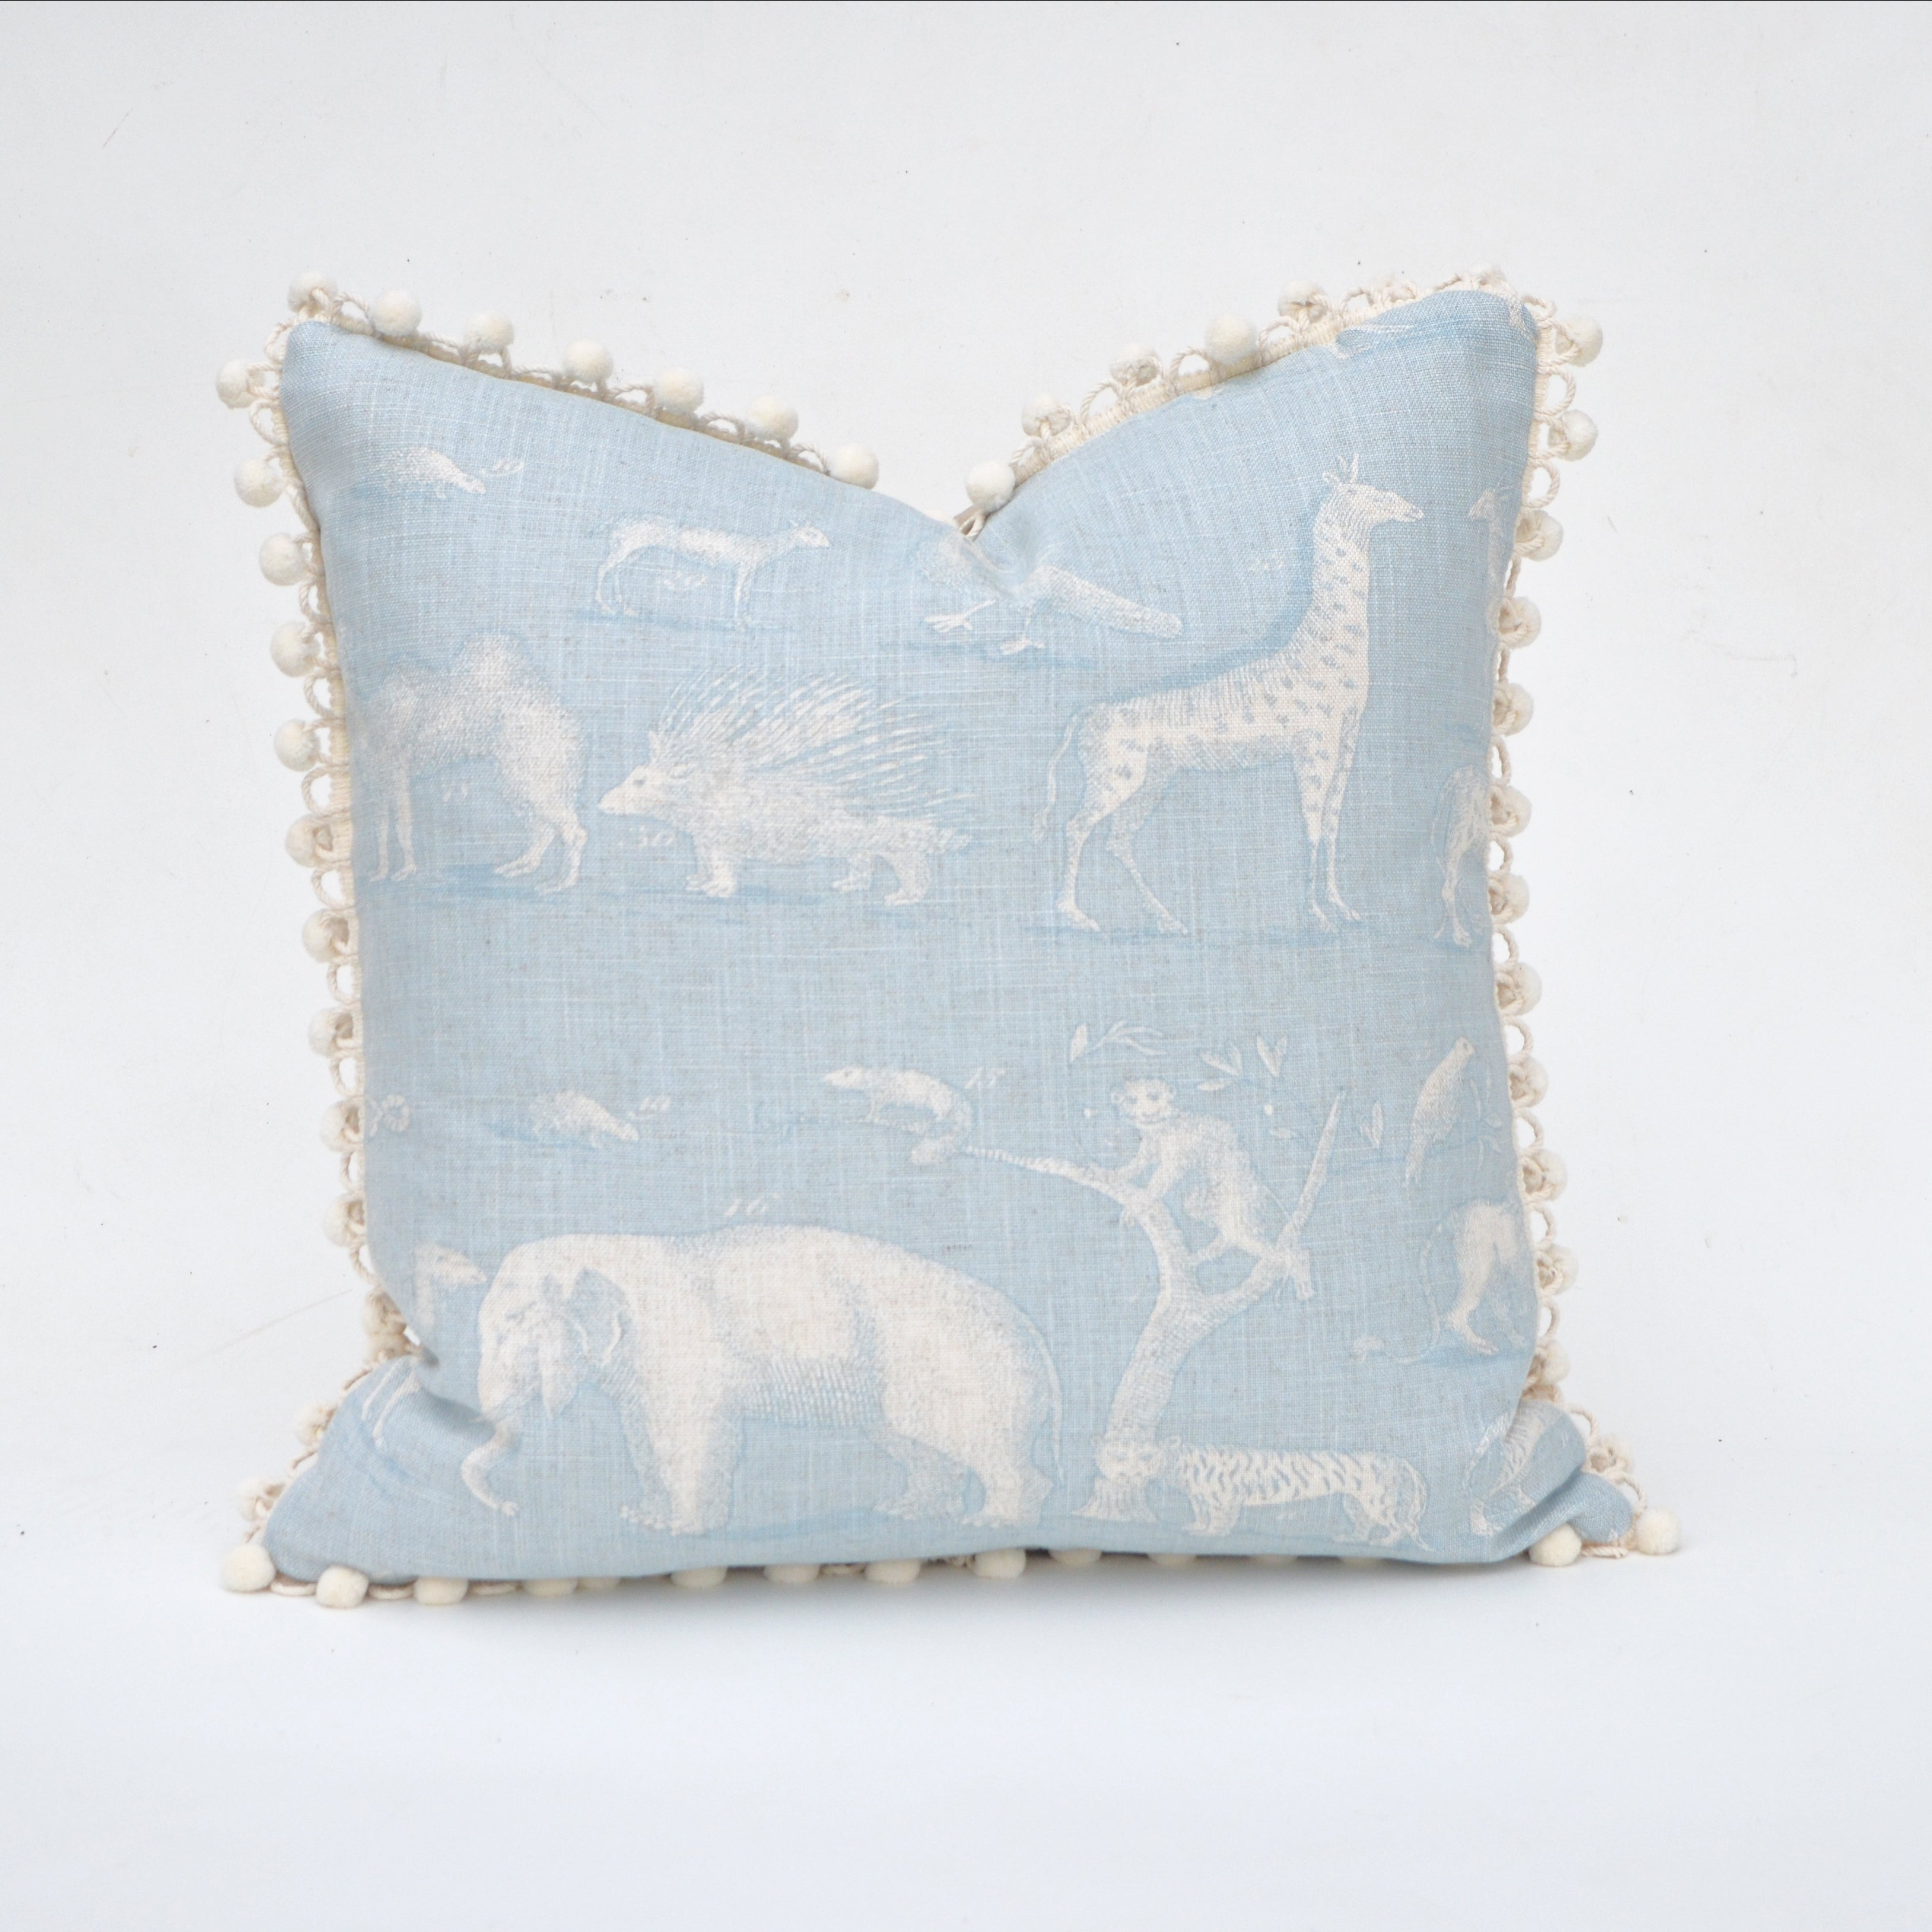 Elizabeth Andersen's Animal Kingdom Pillow Covers come from an Andrew Martin fabric design for Kravet Couture. The fun, whimsical fabric print design features animals from elephants to monkeys, camels to porcupines, all created in a fanciful vintage style